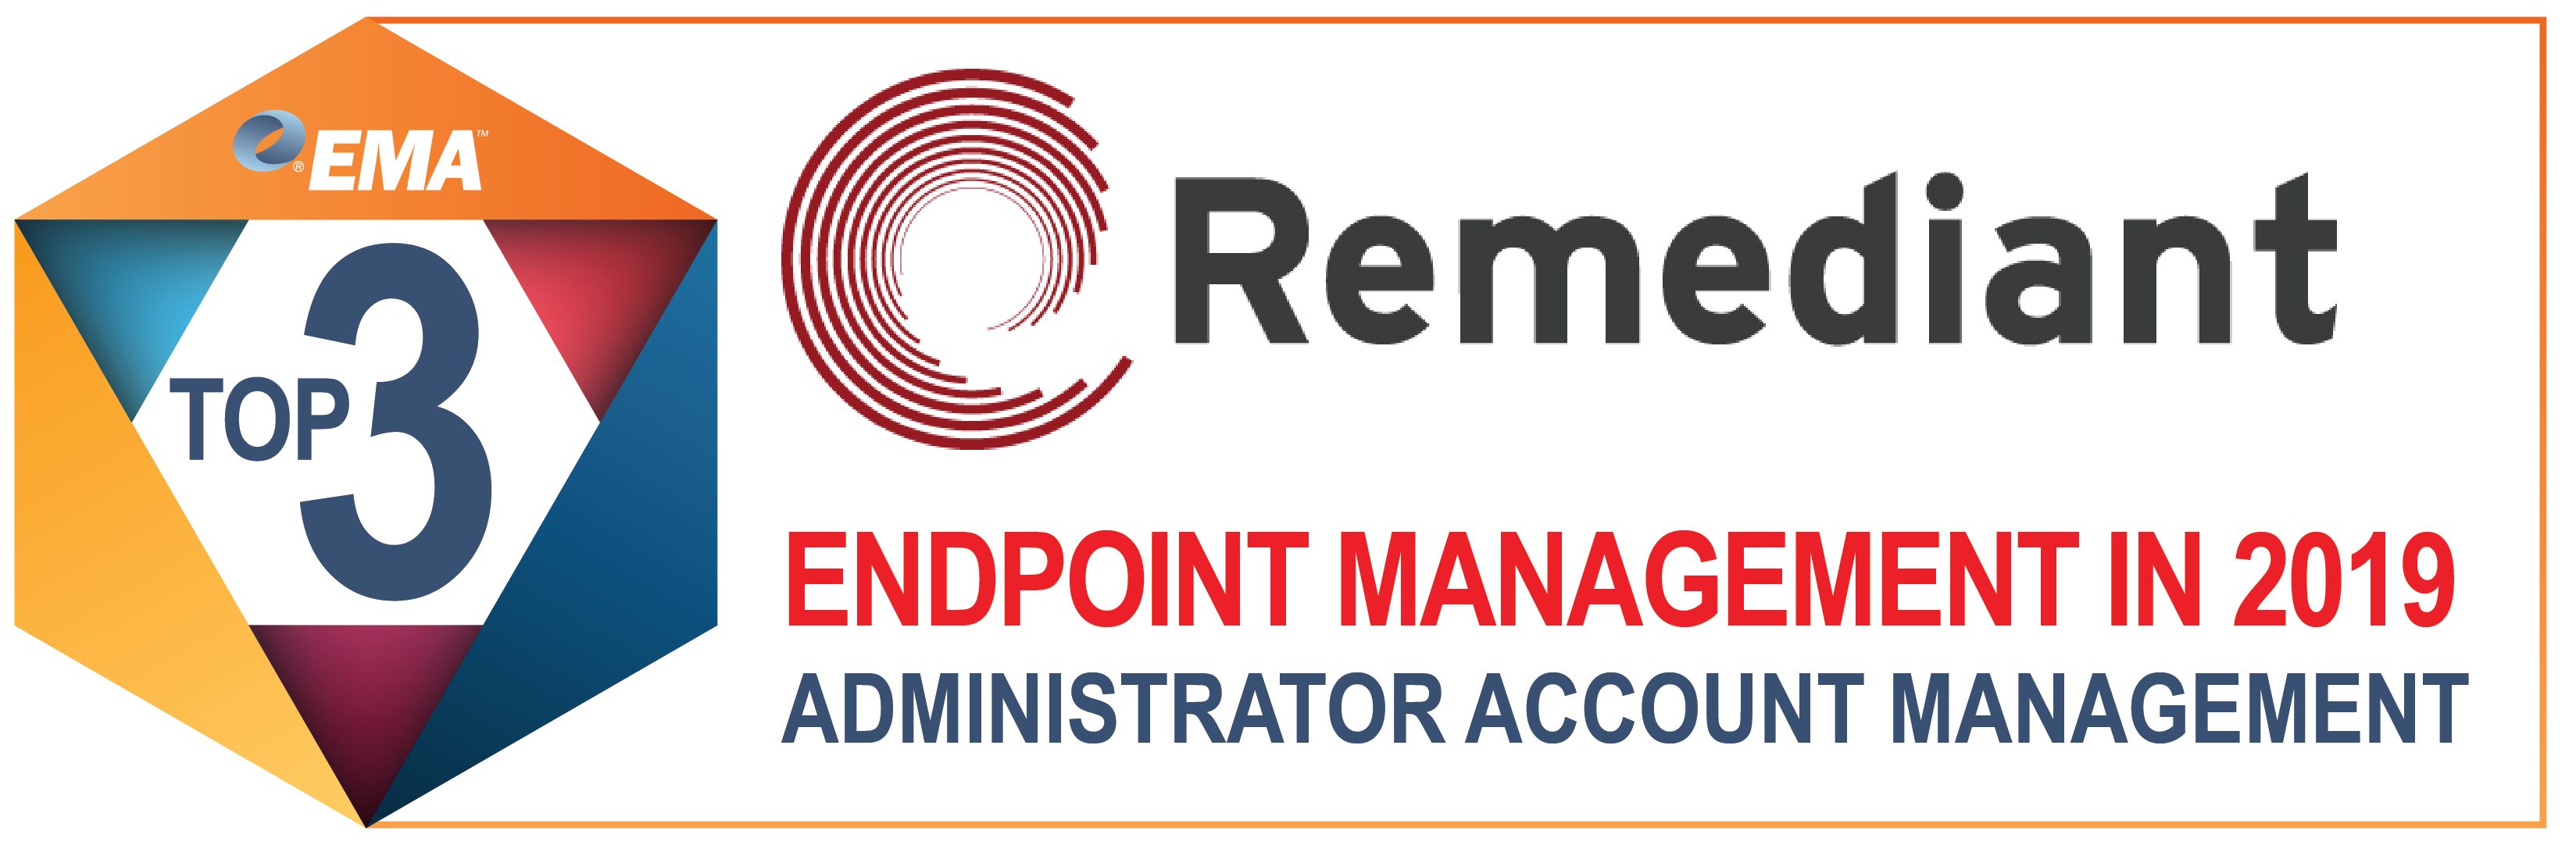 EMA-Remediant-EndpointMgmtTop3Award-2019-01